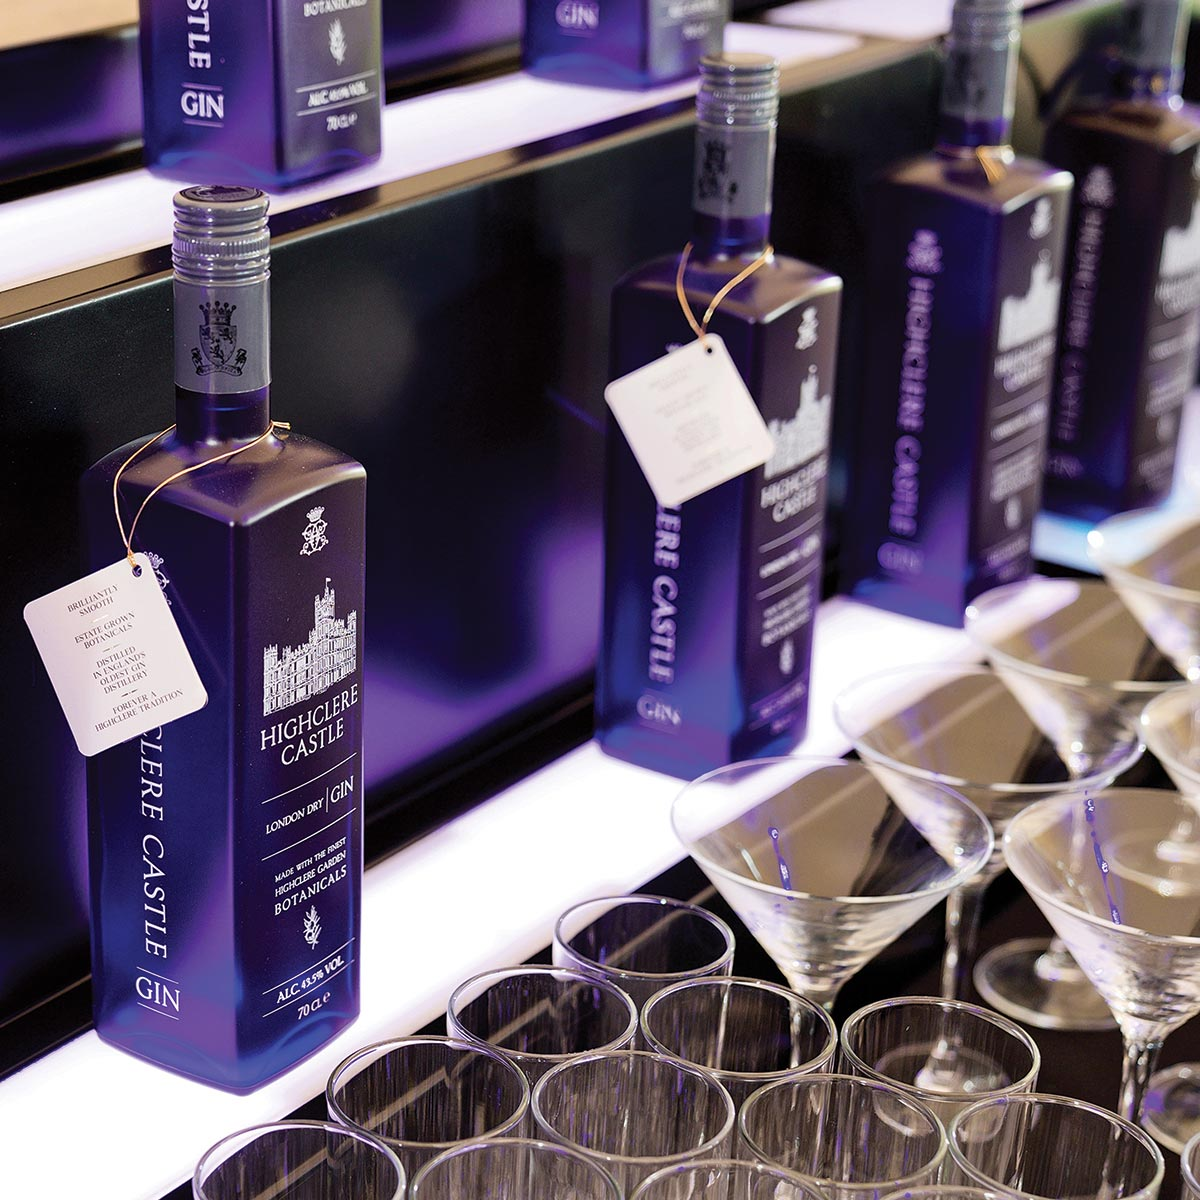 Highclere Castle Spirits' Connecticut Team Celebrates International Launch